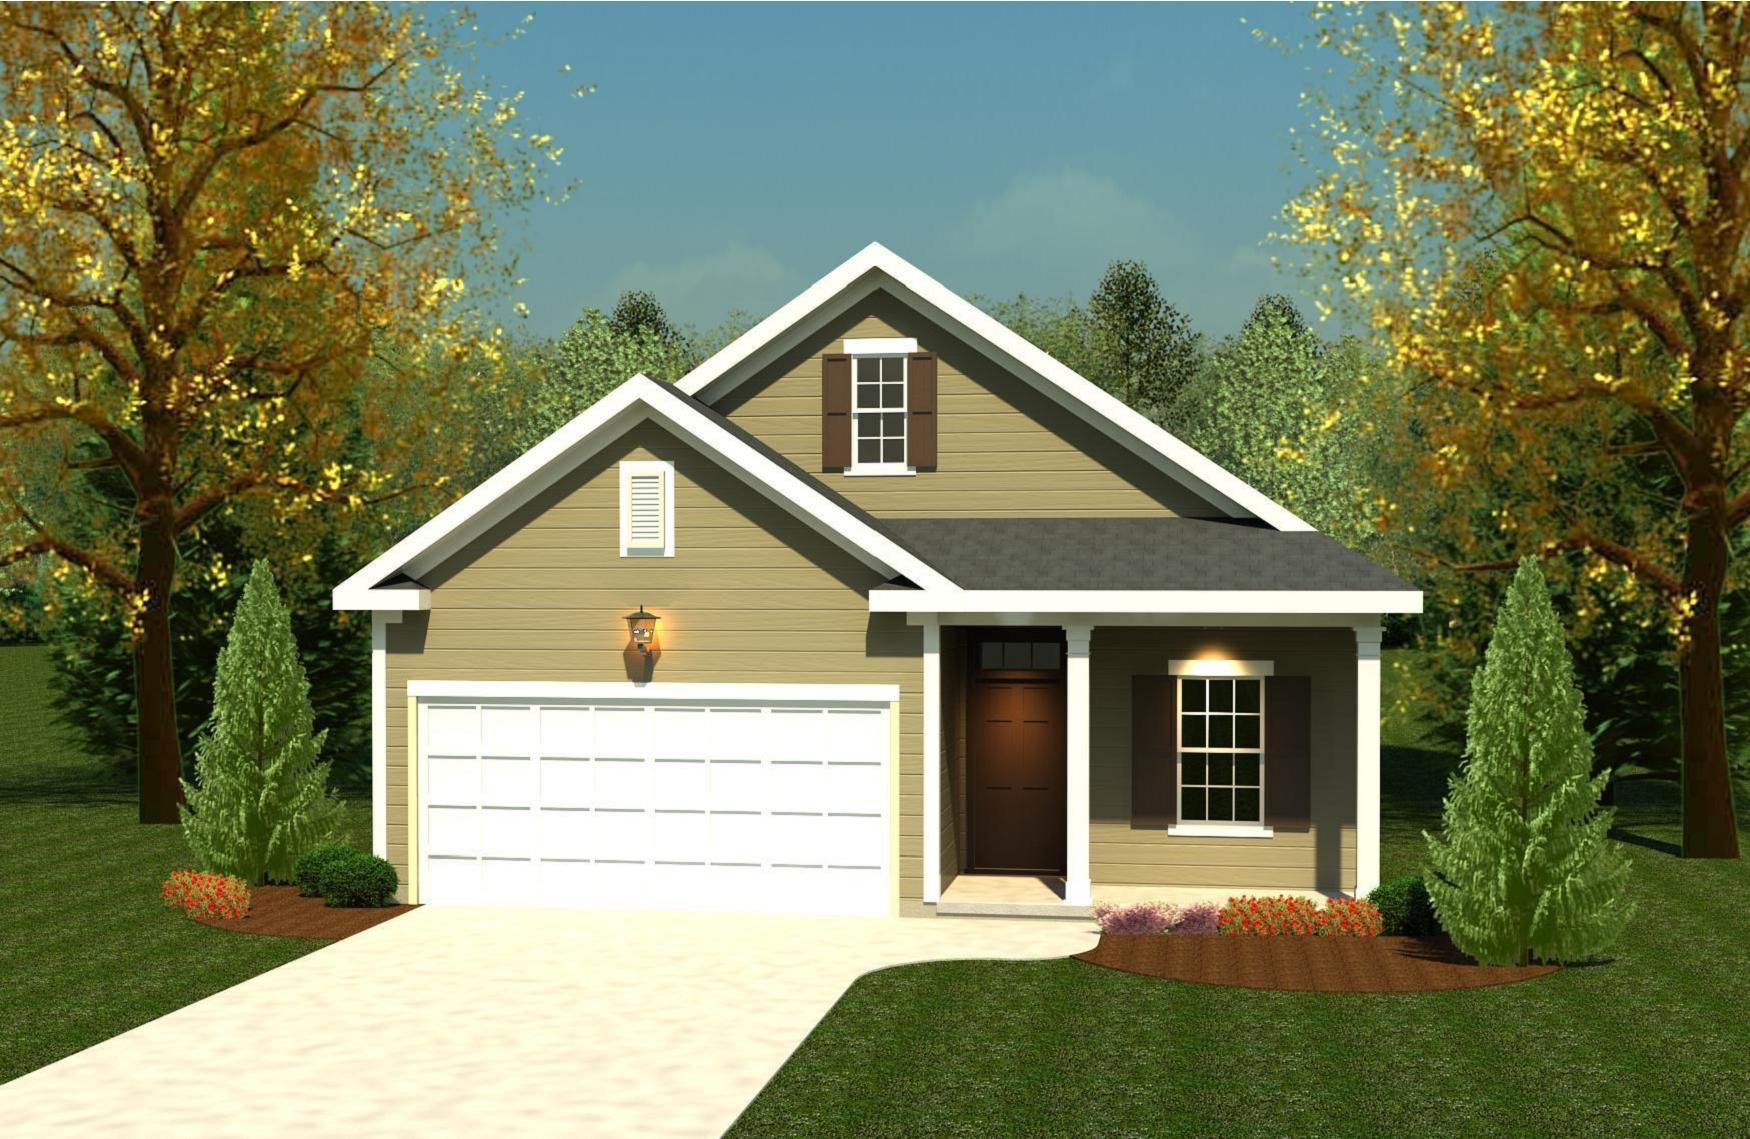 Home builders in augusta ga area amantha home review for Designer homes augusta ga